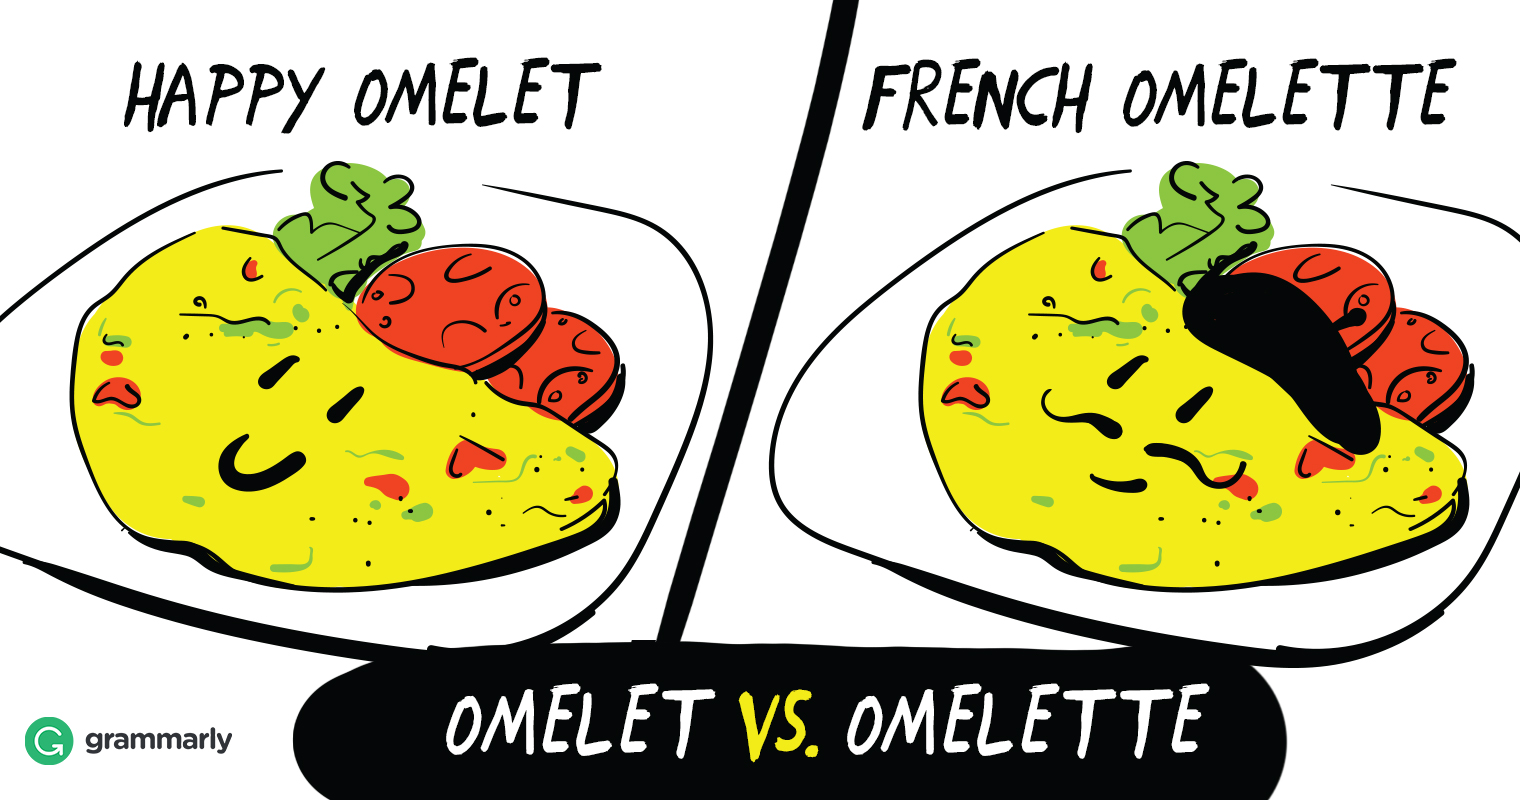 Is It Omelet or Omelette?